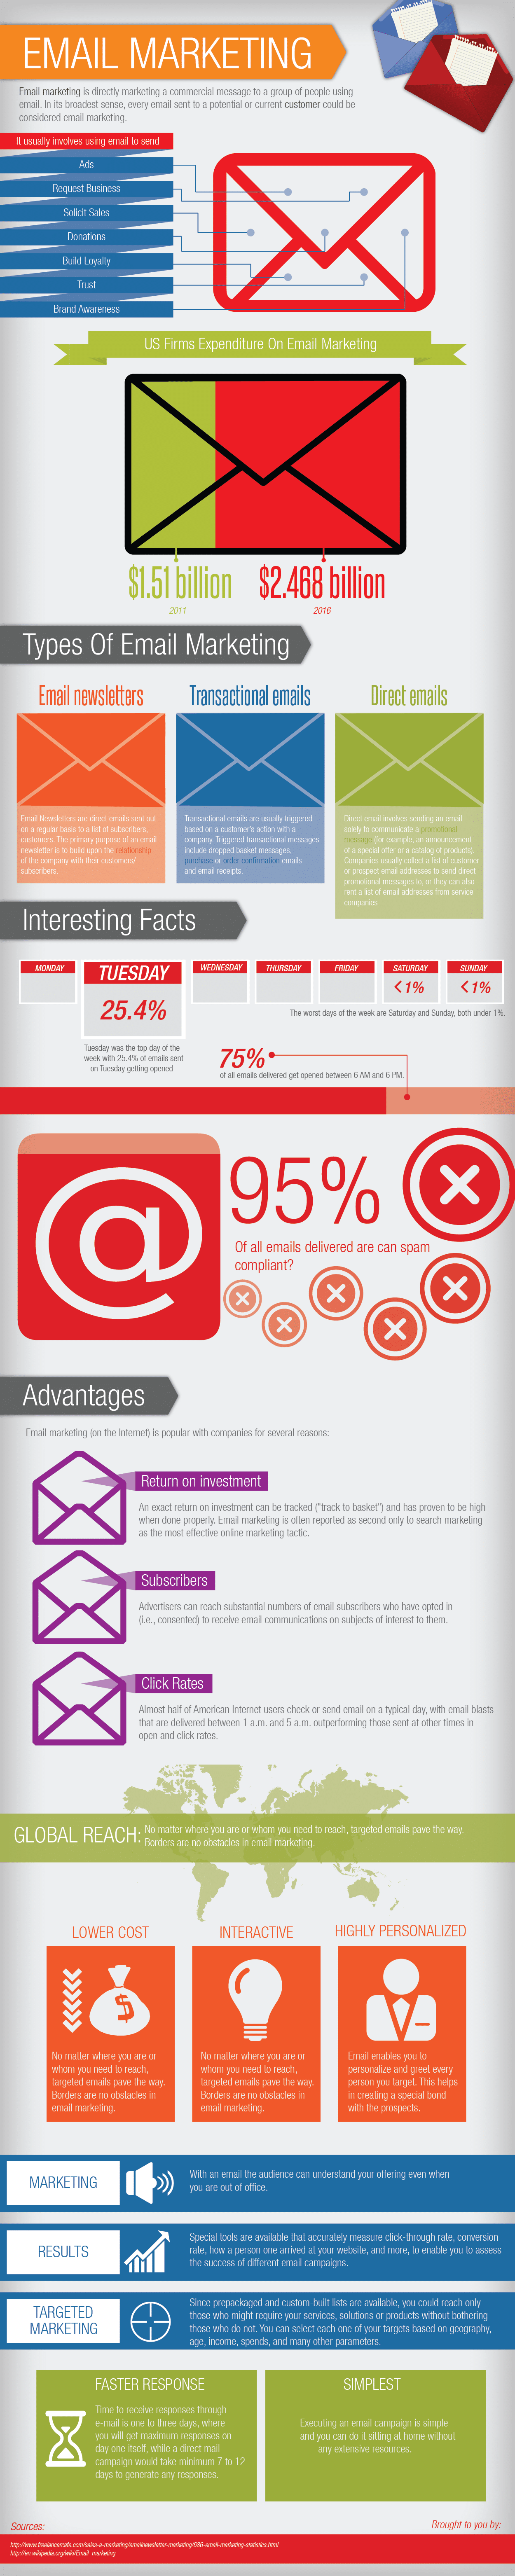 Most Effective Advertising Online In 2012 [Infographic]